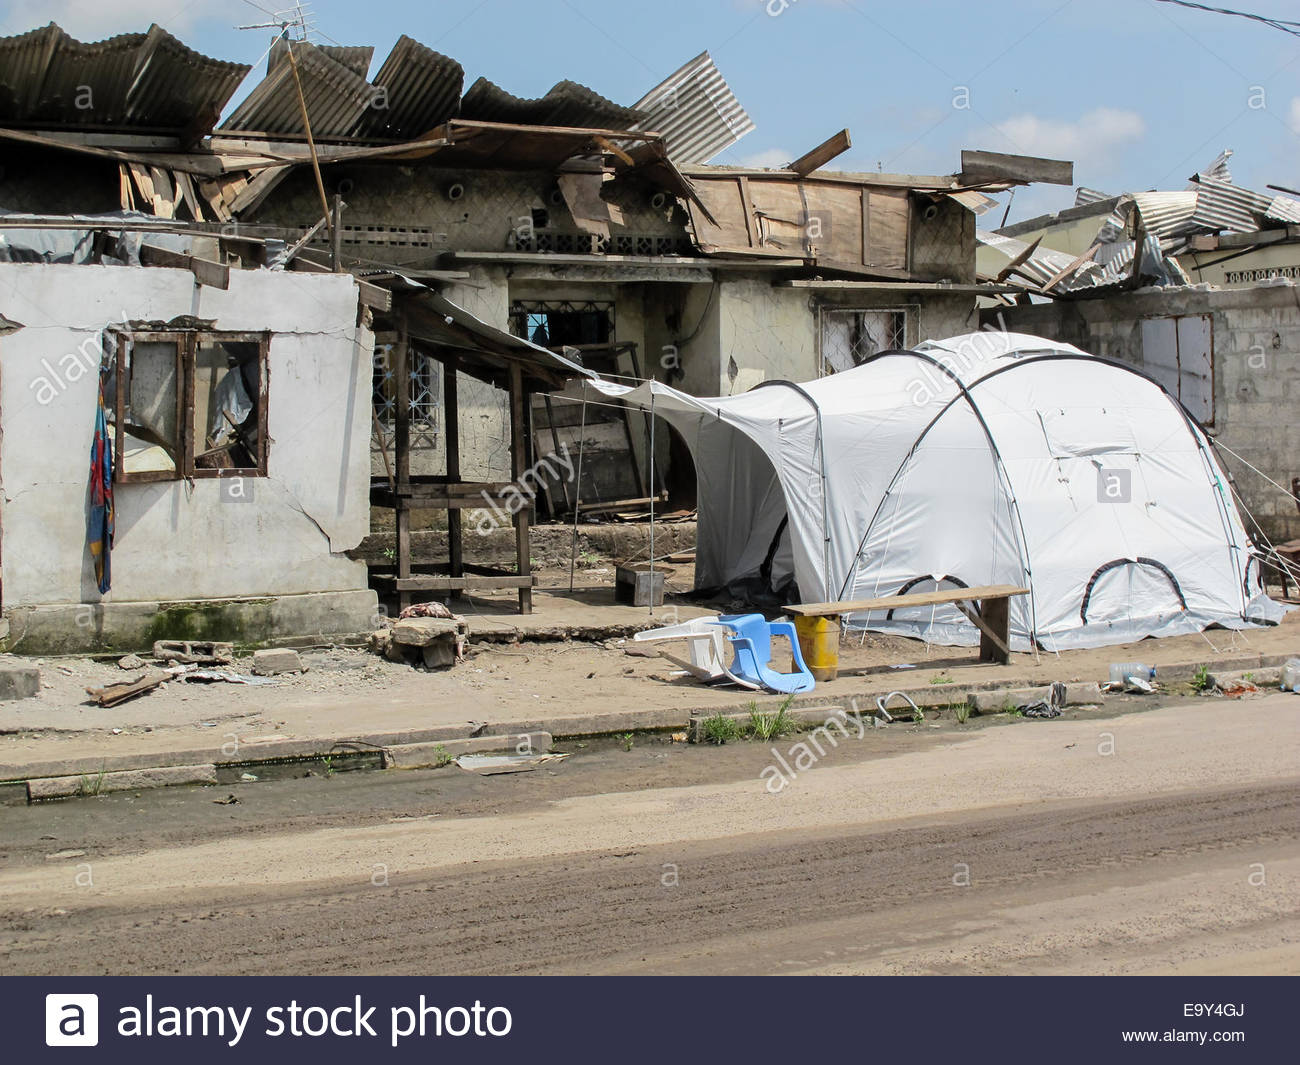 A disaster relief tent erected next to a badly damaged tent in Brazzaville. Congo  after an explosion made 14,000 - Stock Image